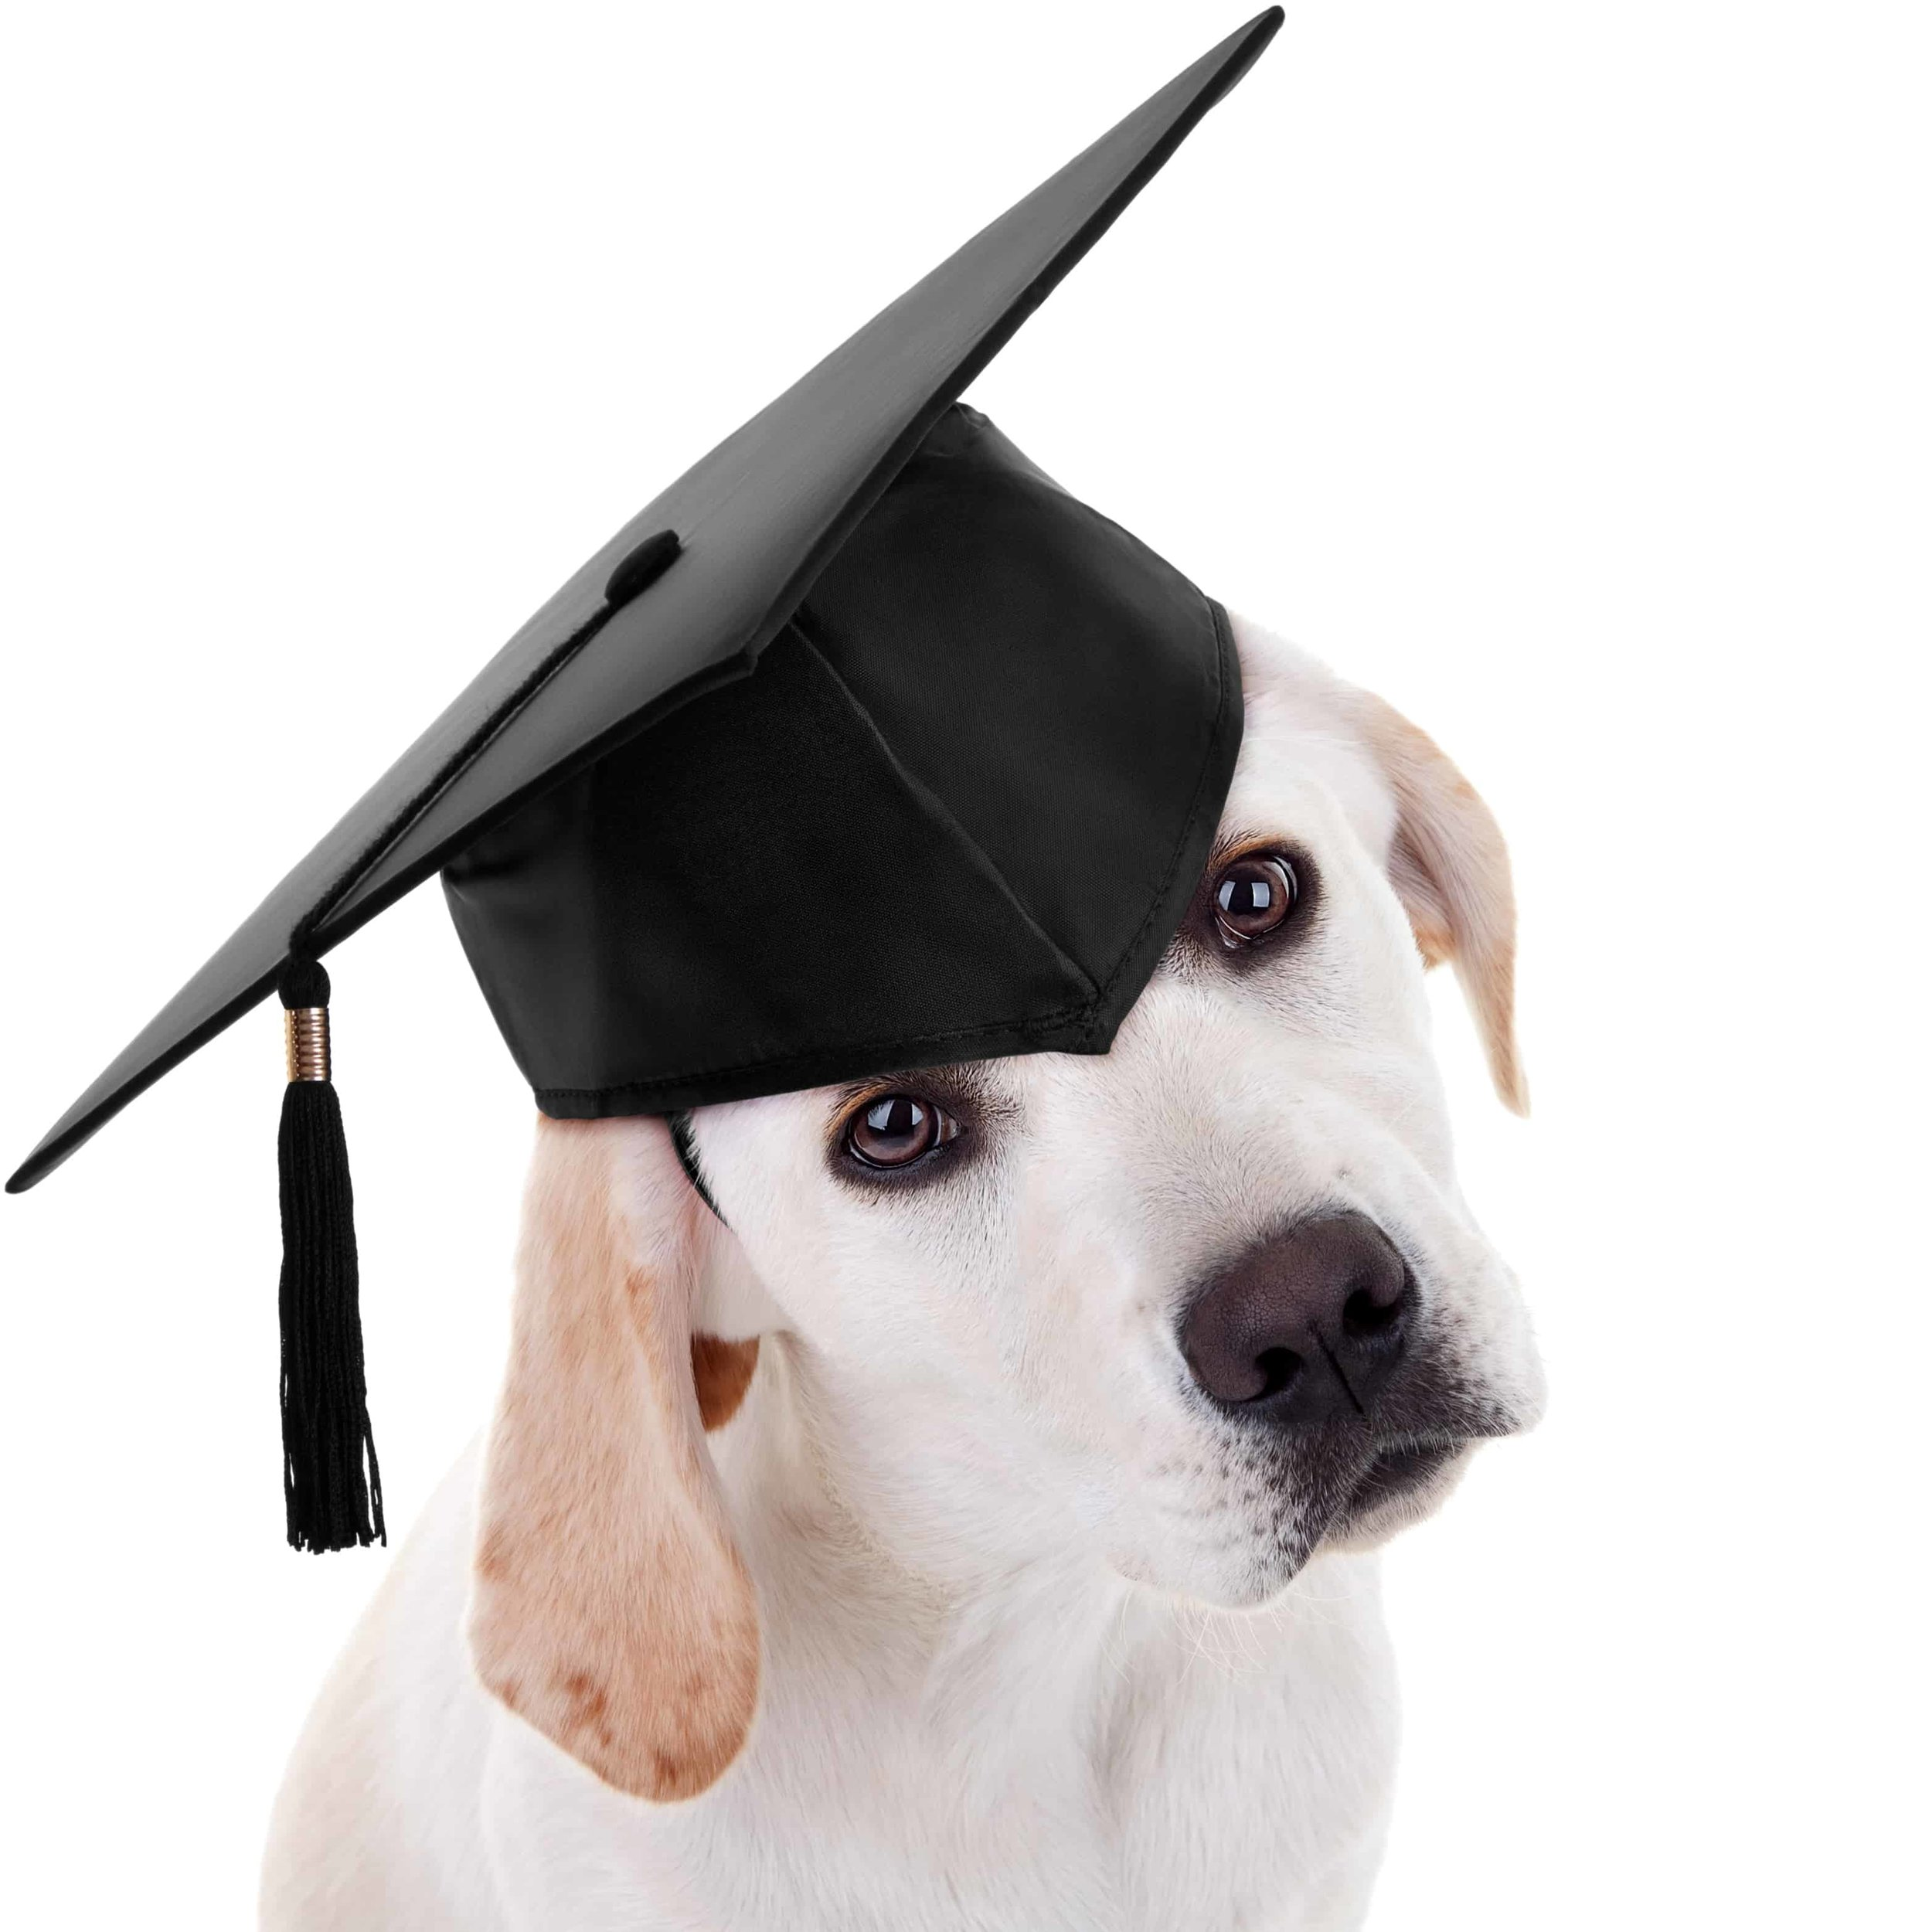 dog-with-graduation-cap.jpg